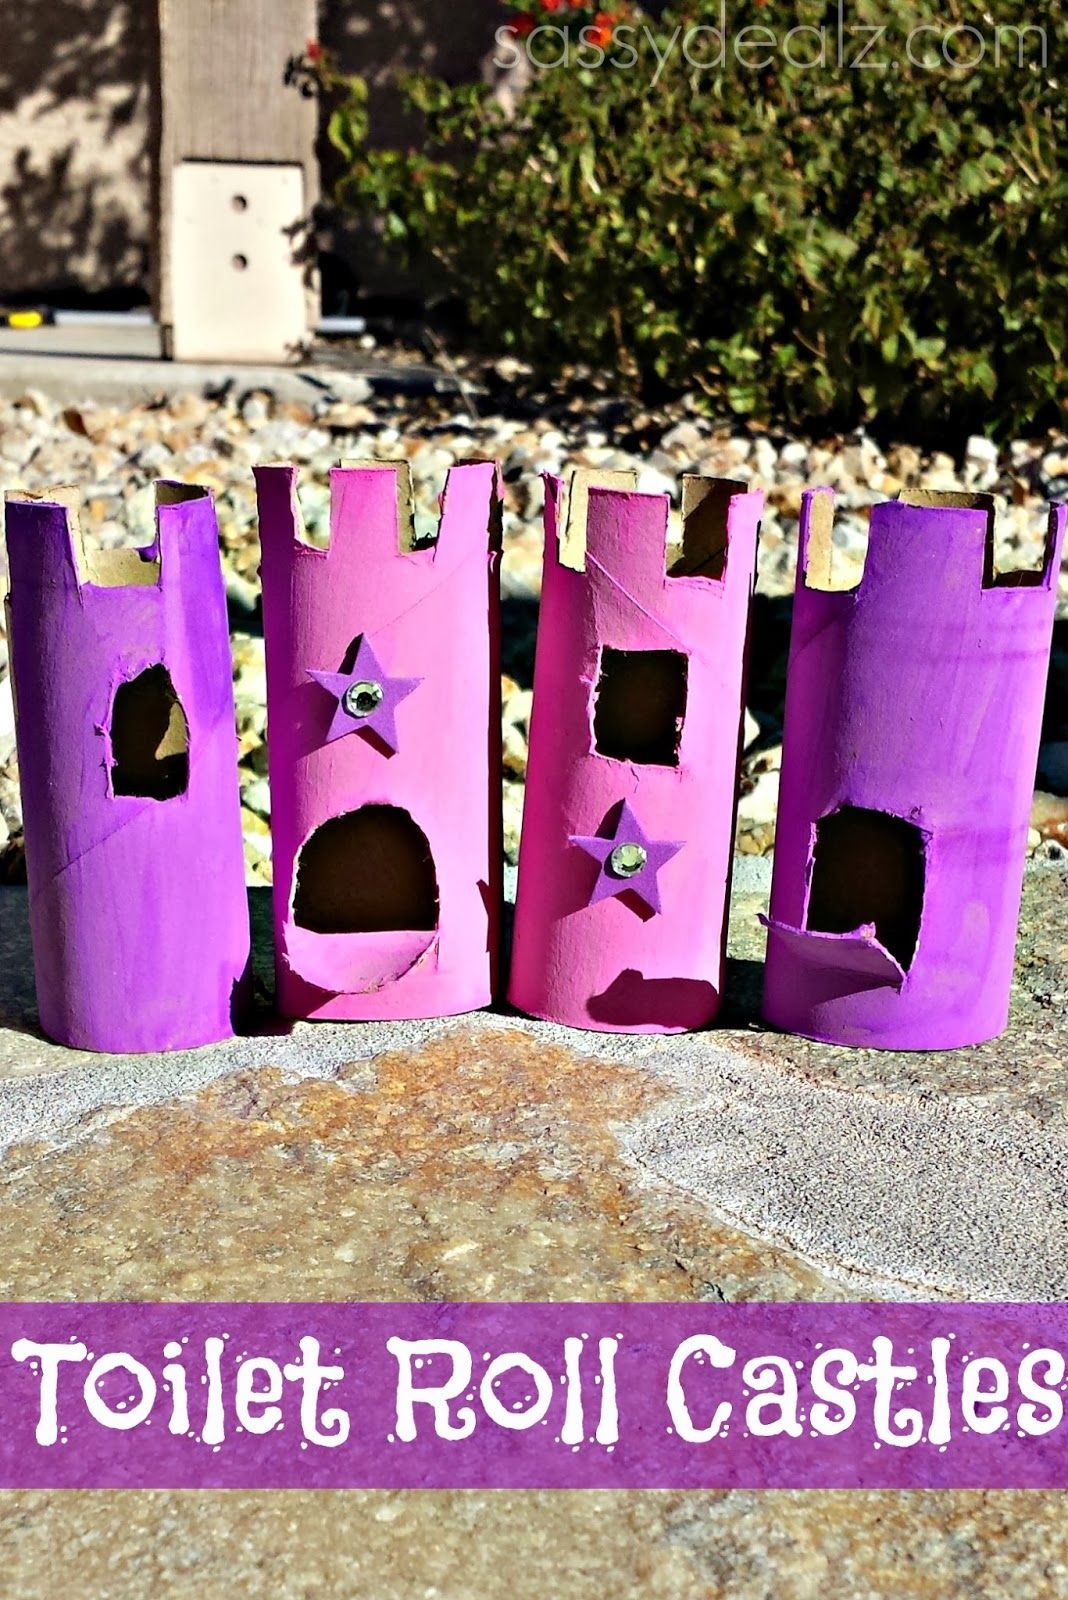 toilet paper roll castles {craft idea for kids | castle crafts